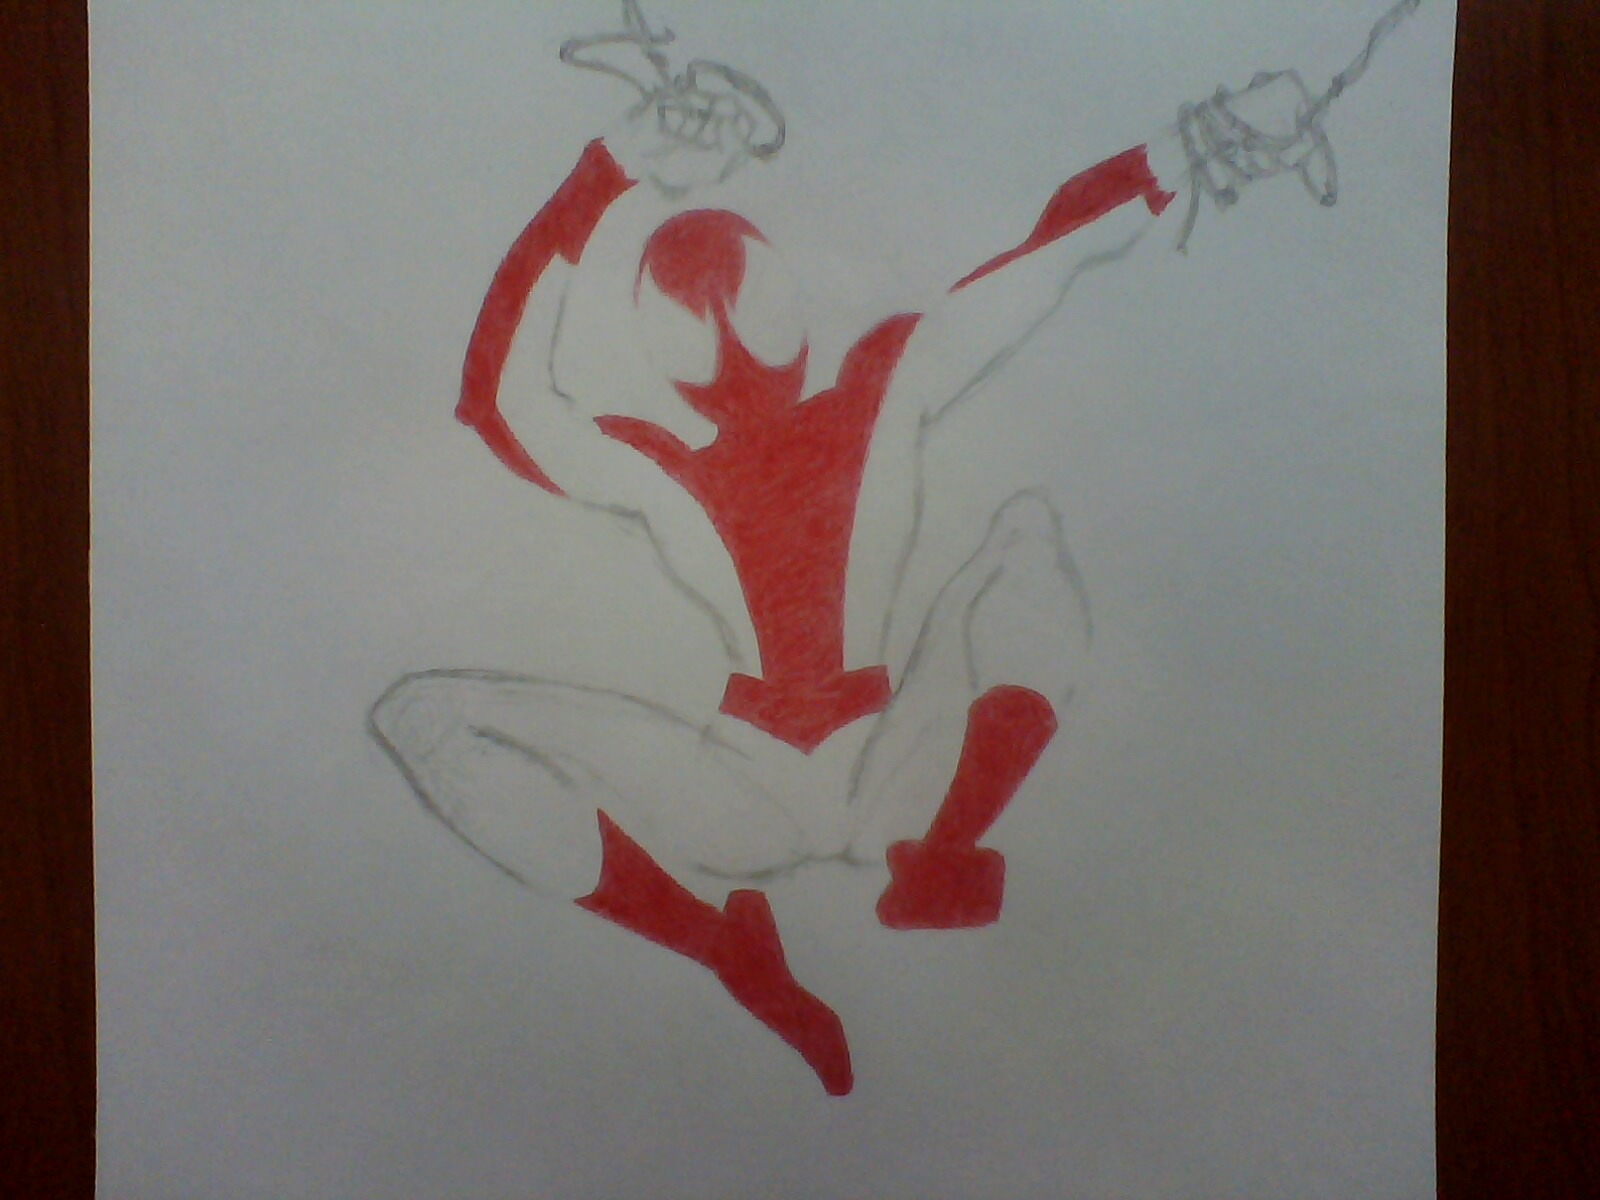 Dibujo propio de Ultimate Spider-Man